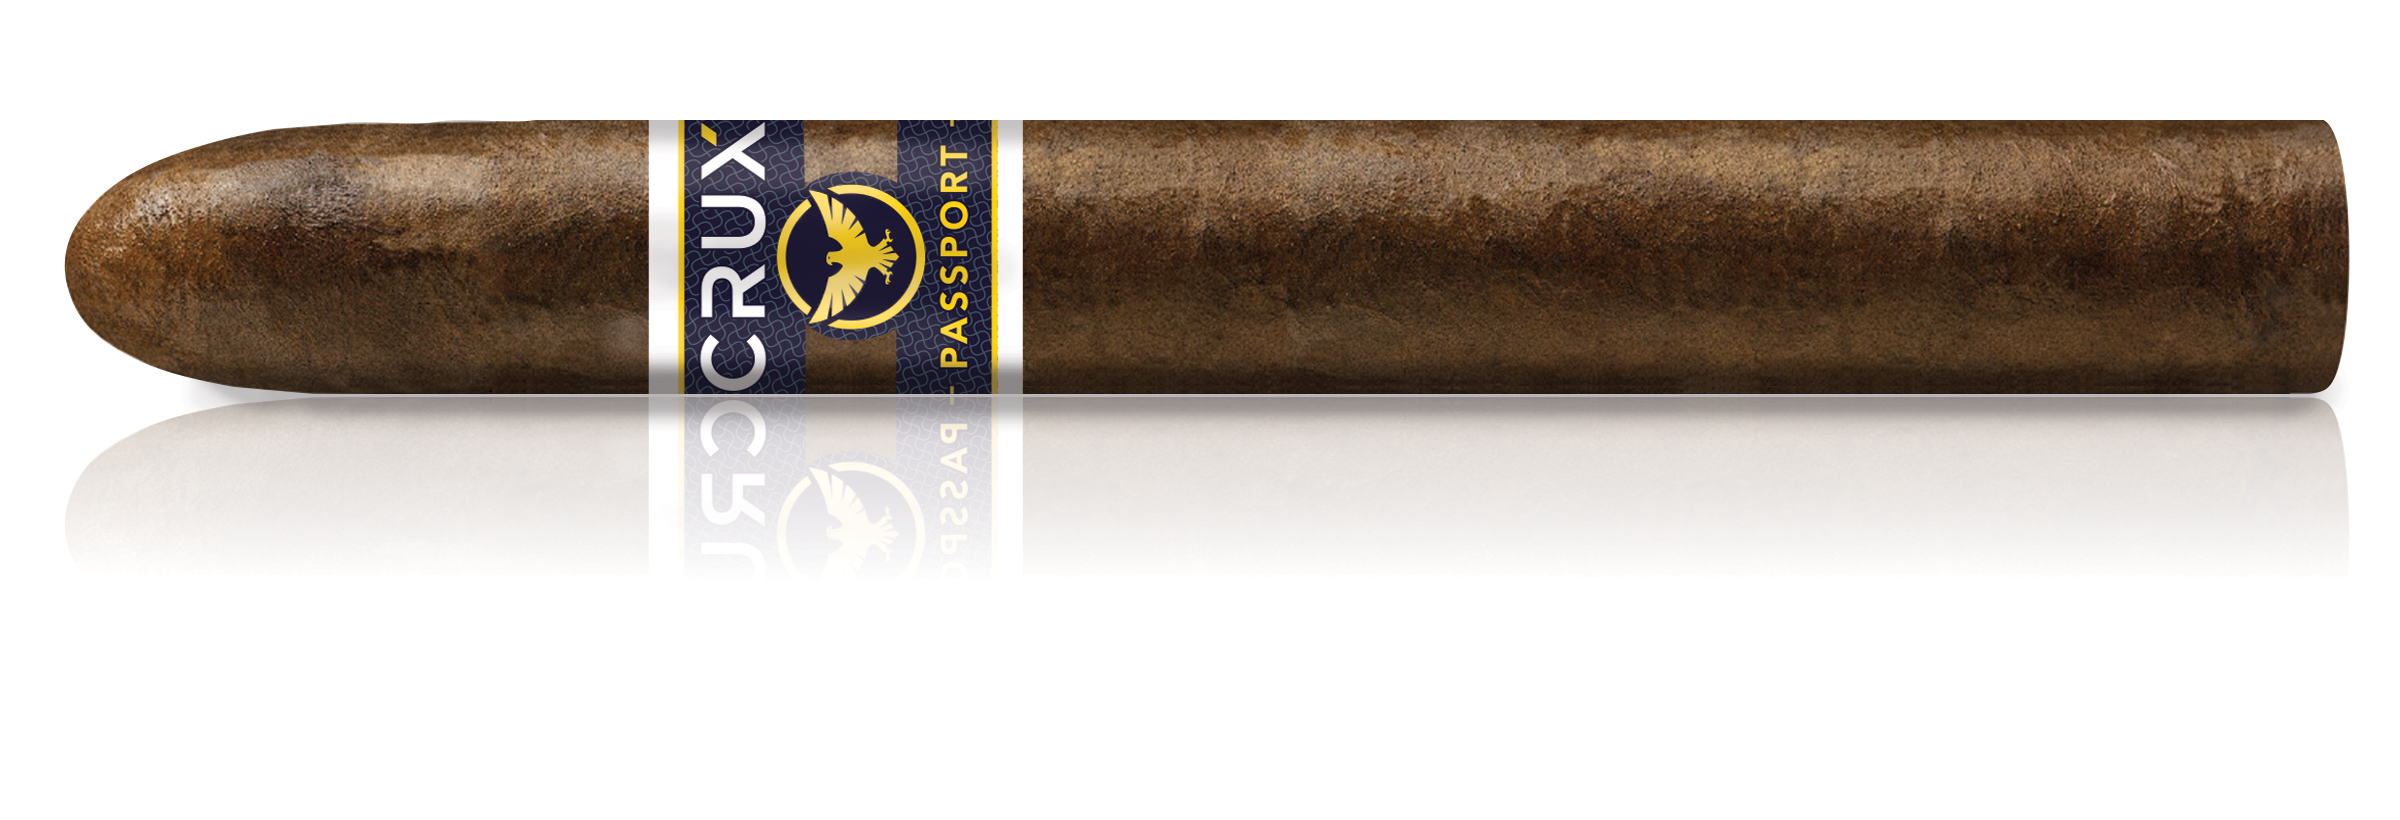 horizontal crux Passport cigar